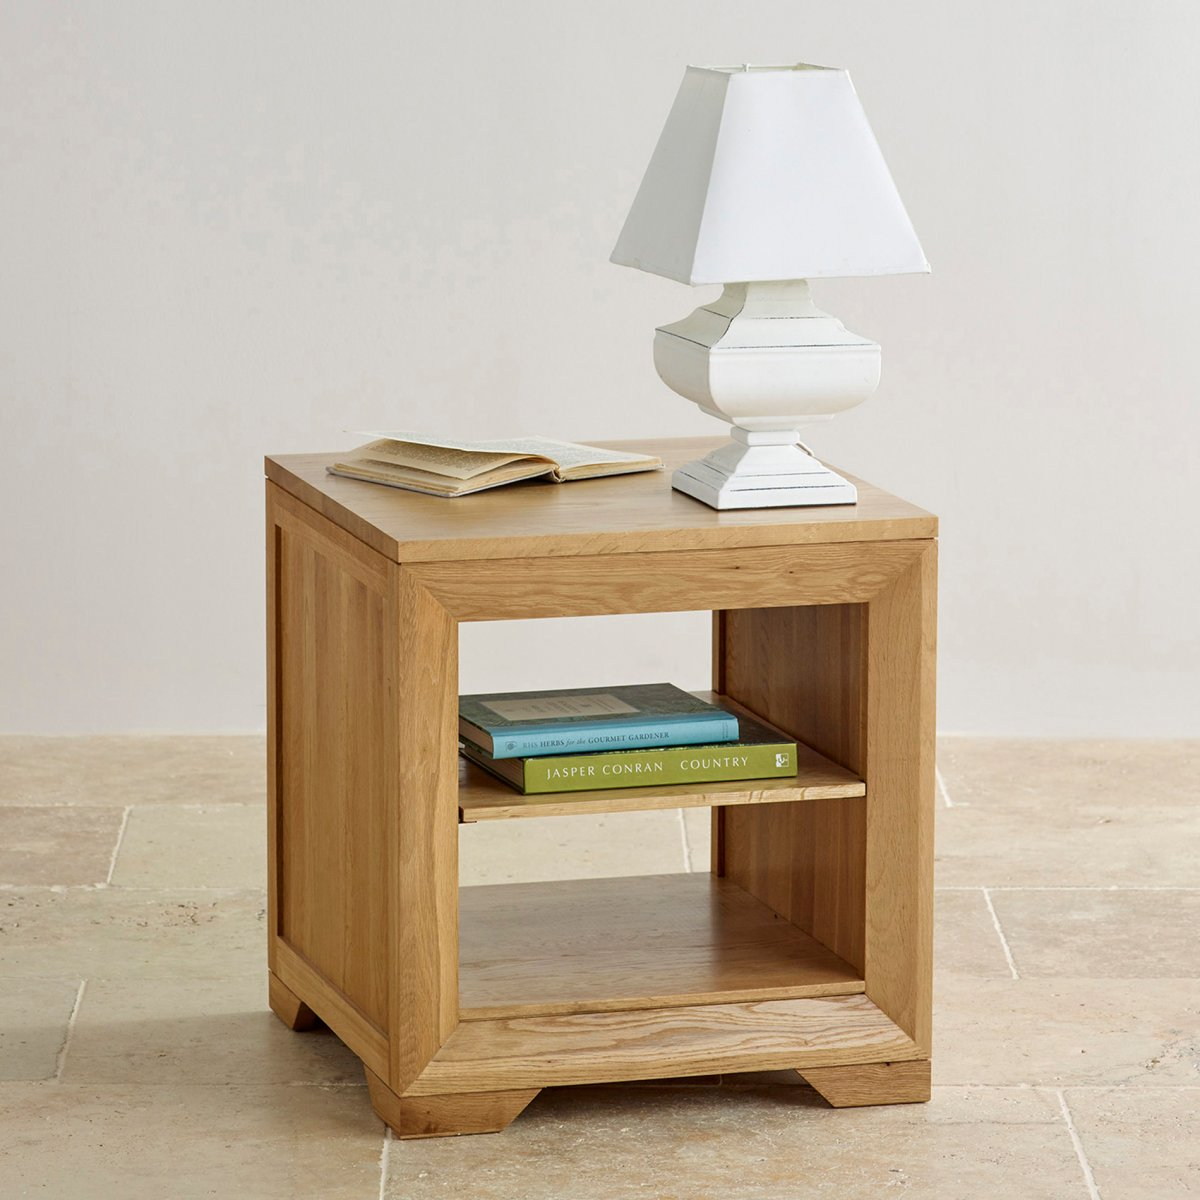 Bevel bedside table with shelf in natural solid oak for Bedside table shelf